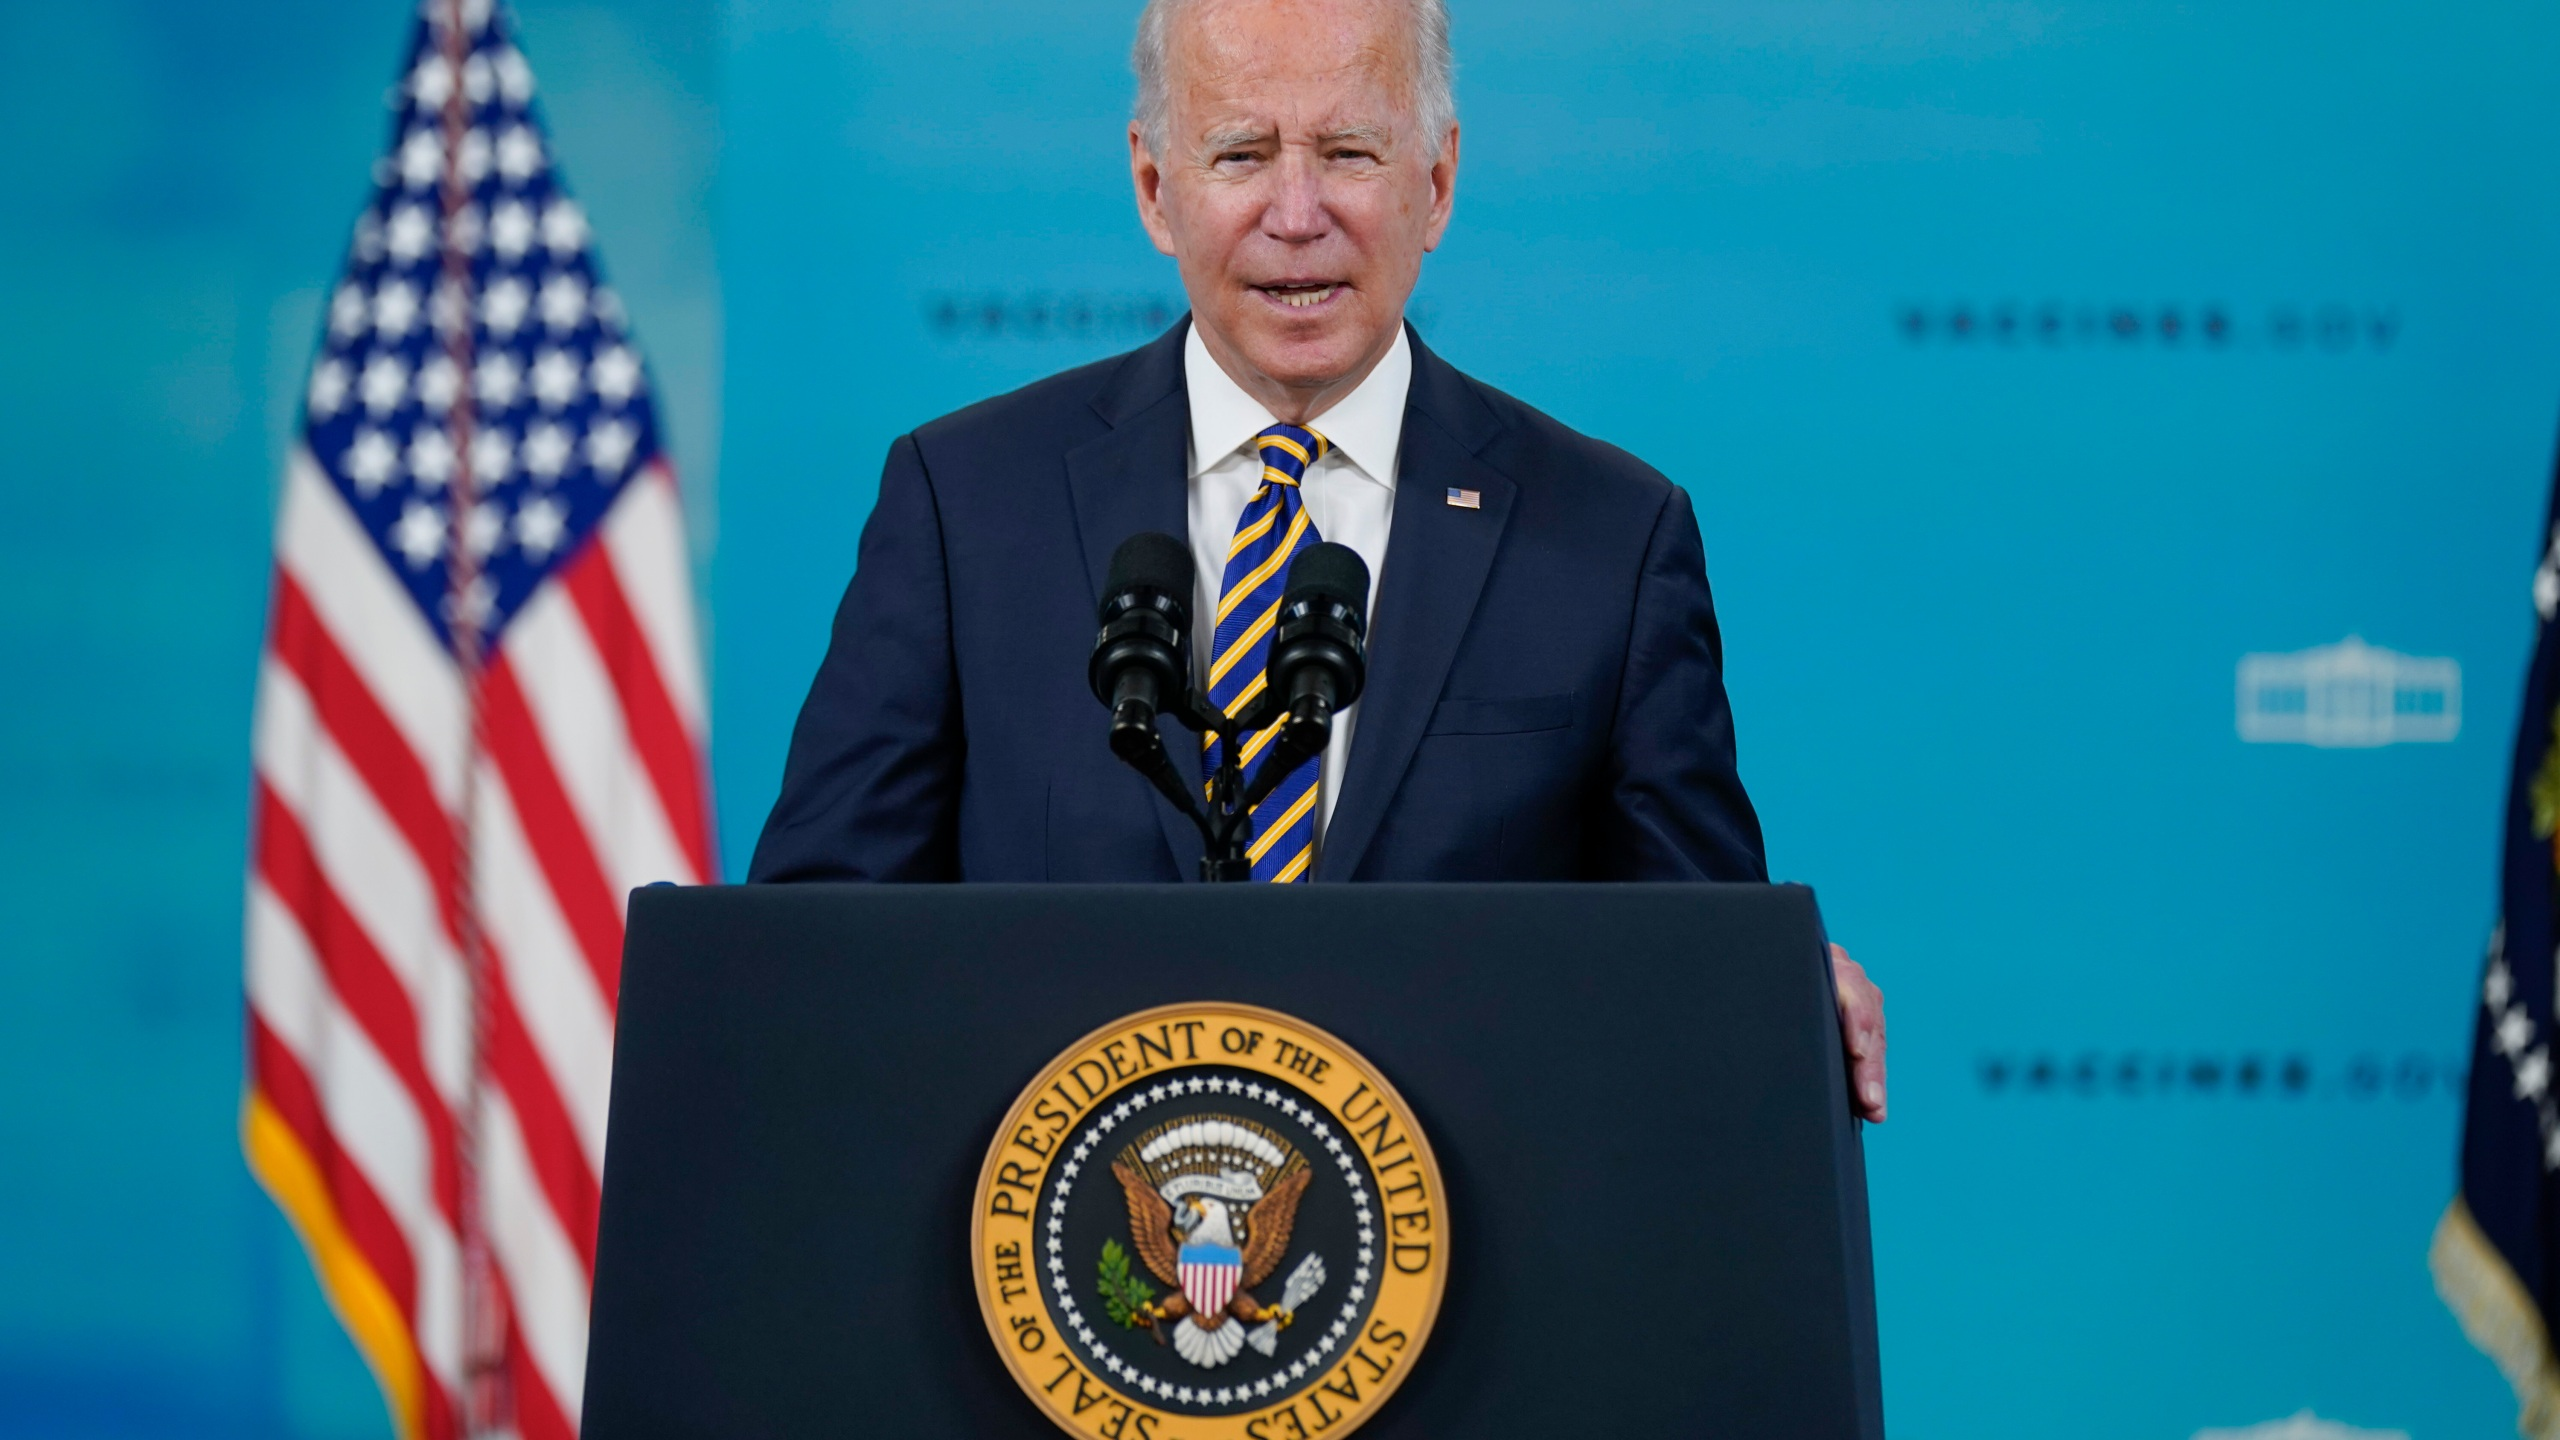 President Joe Biden delivers an update on the COVID-19 response and vaccination program, in the South Court Auditorium on the White House campus, Thursday, Oct. 14, 2021